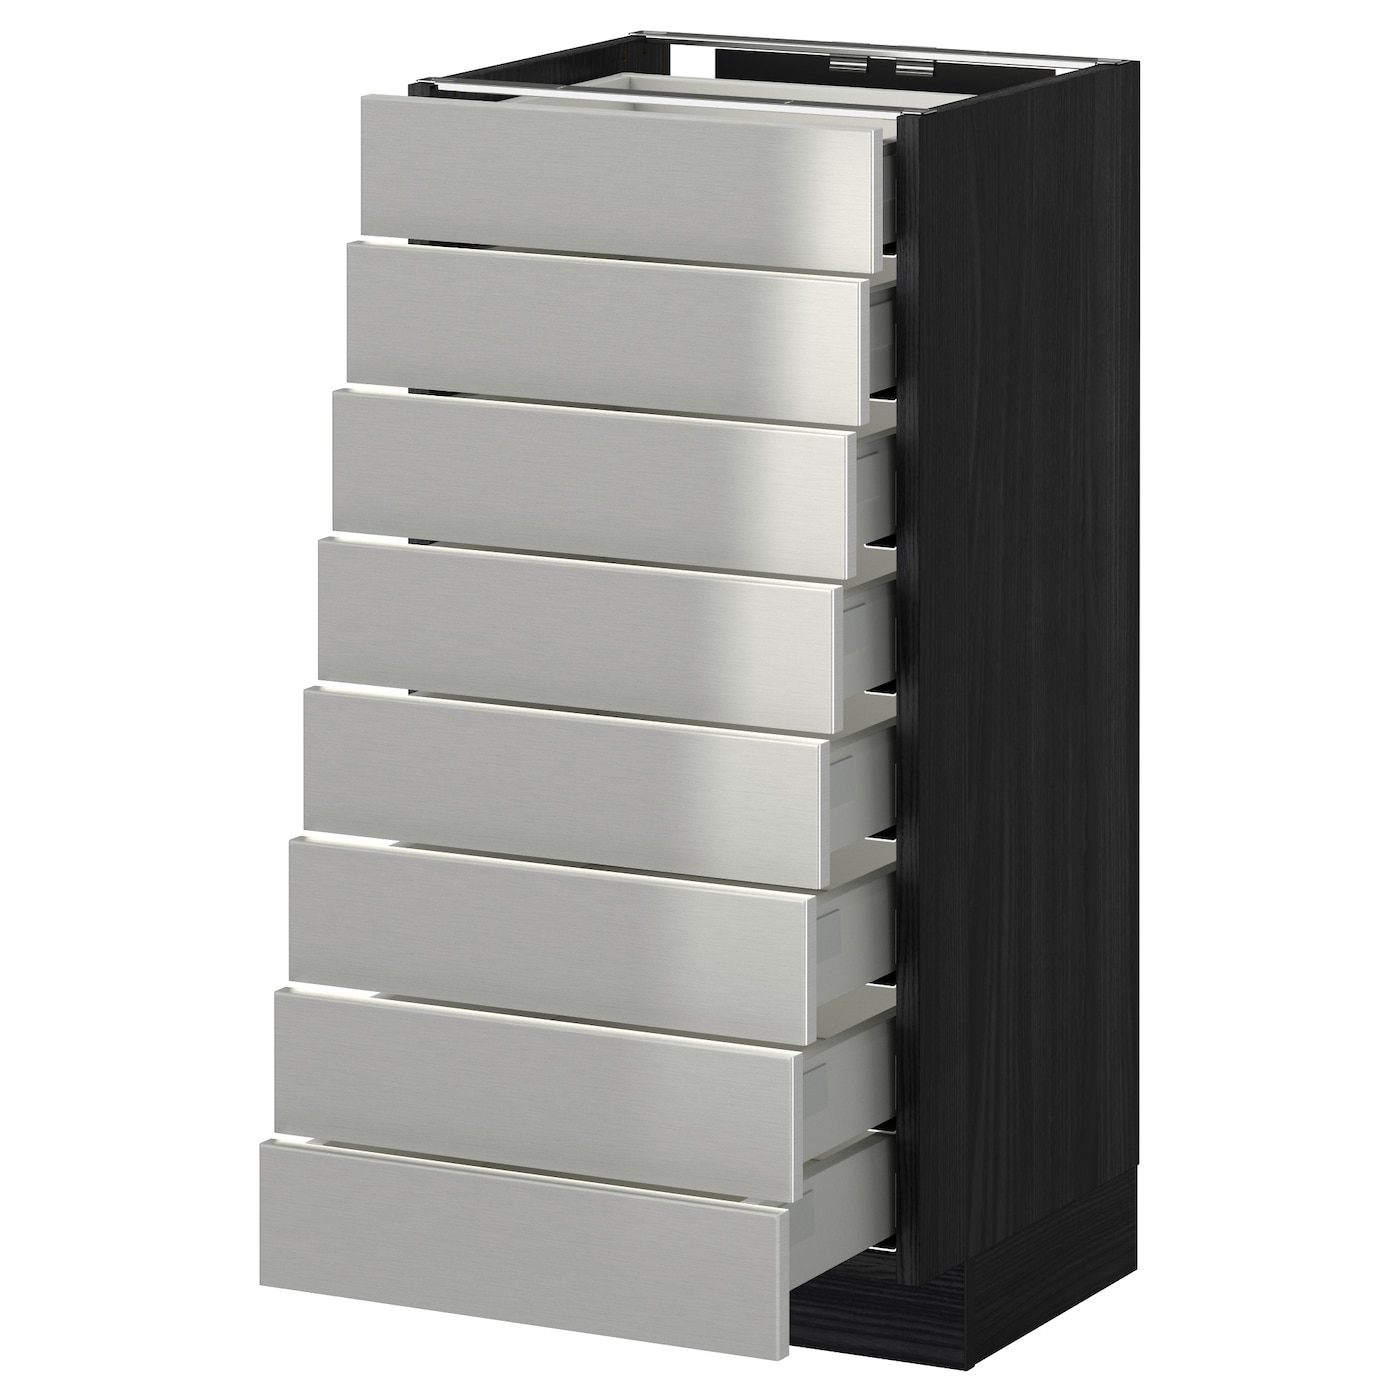 Metod Maximera Base Cabinet 8 Fronts 8 Low Drawers Black Grevsta Stainless Steel 40x37 Cm Ikea